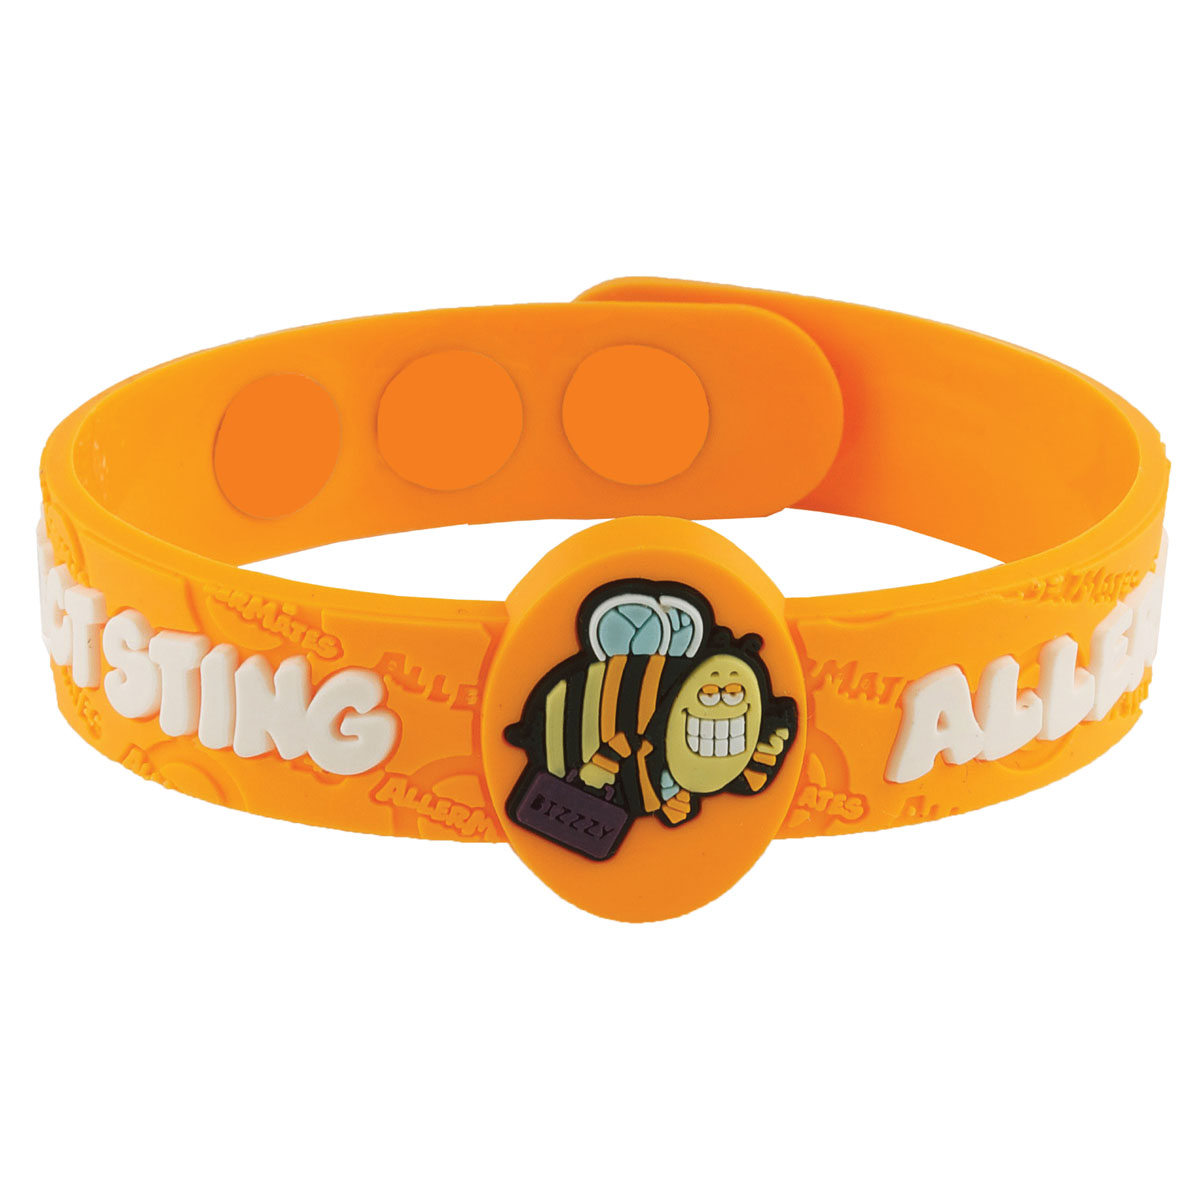 Children's Medical Alert Bracelet for Insect / Bee Sting Allergies AWABR10132